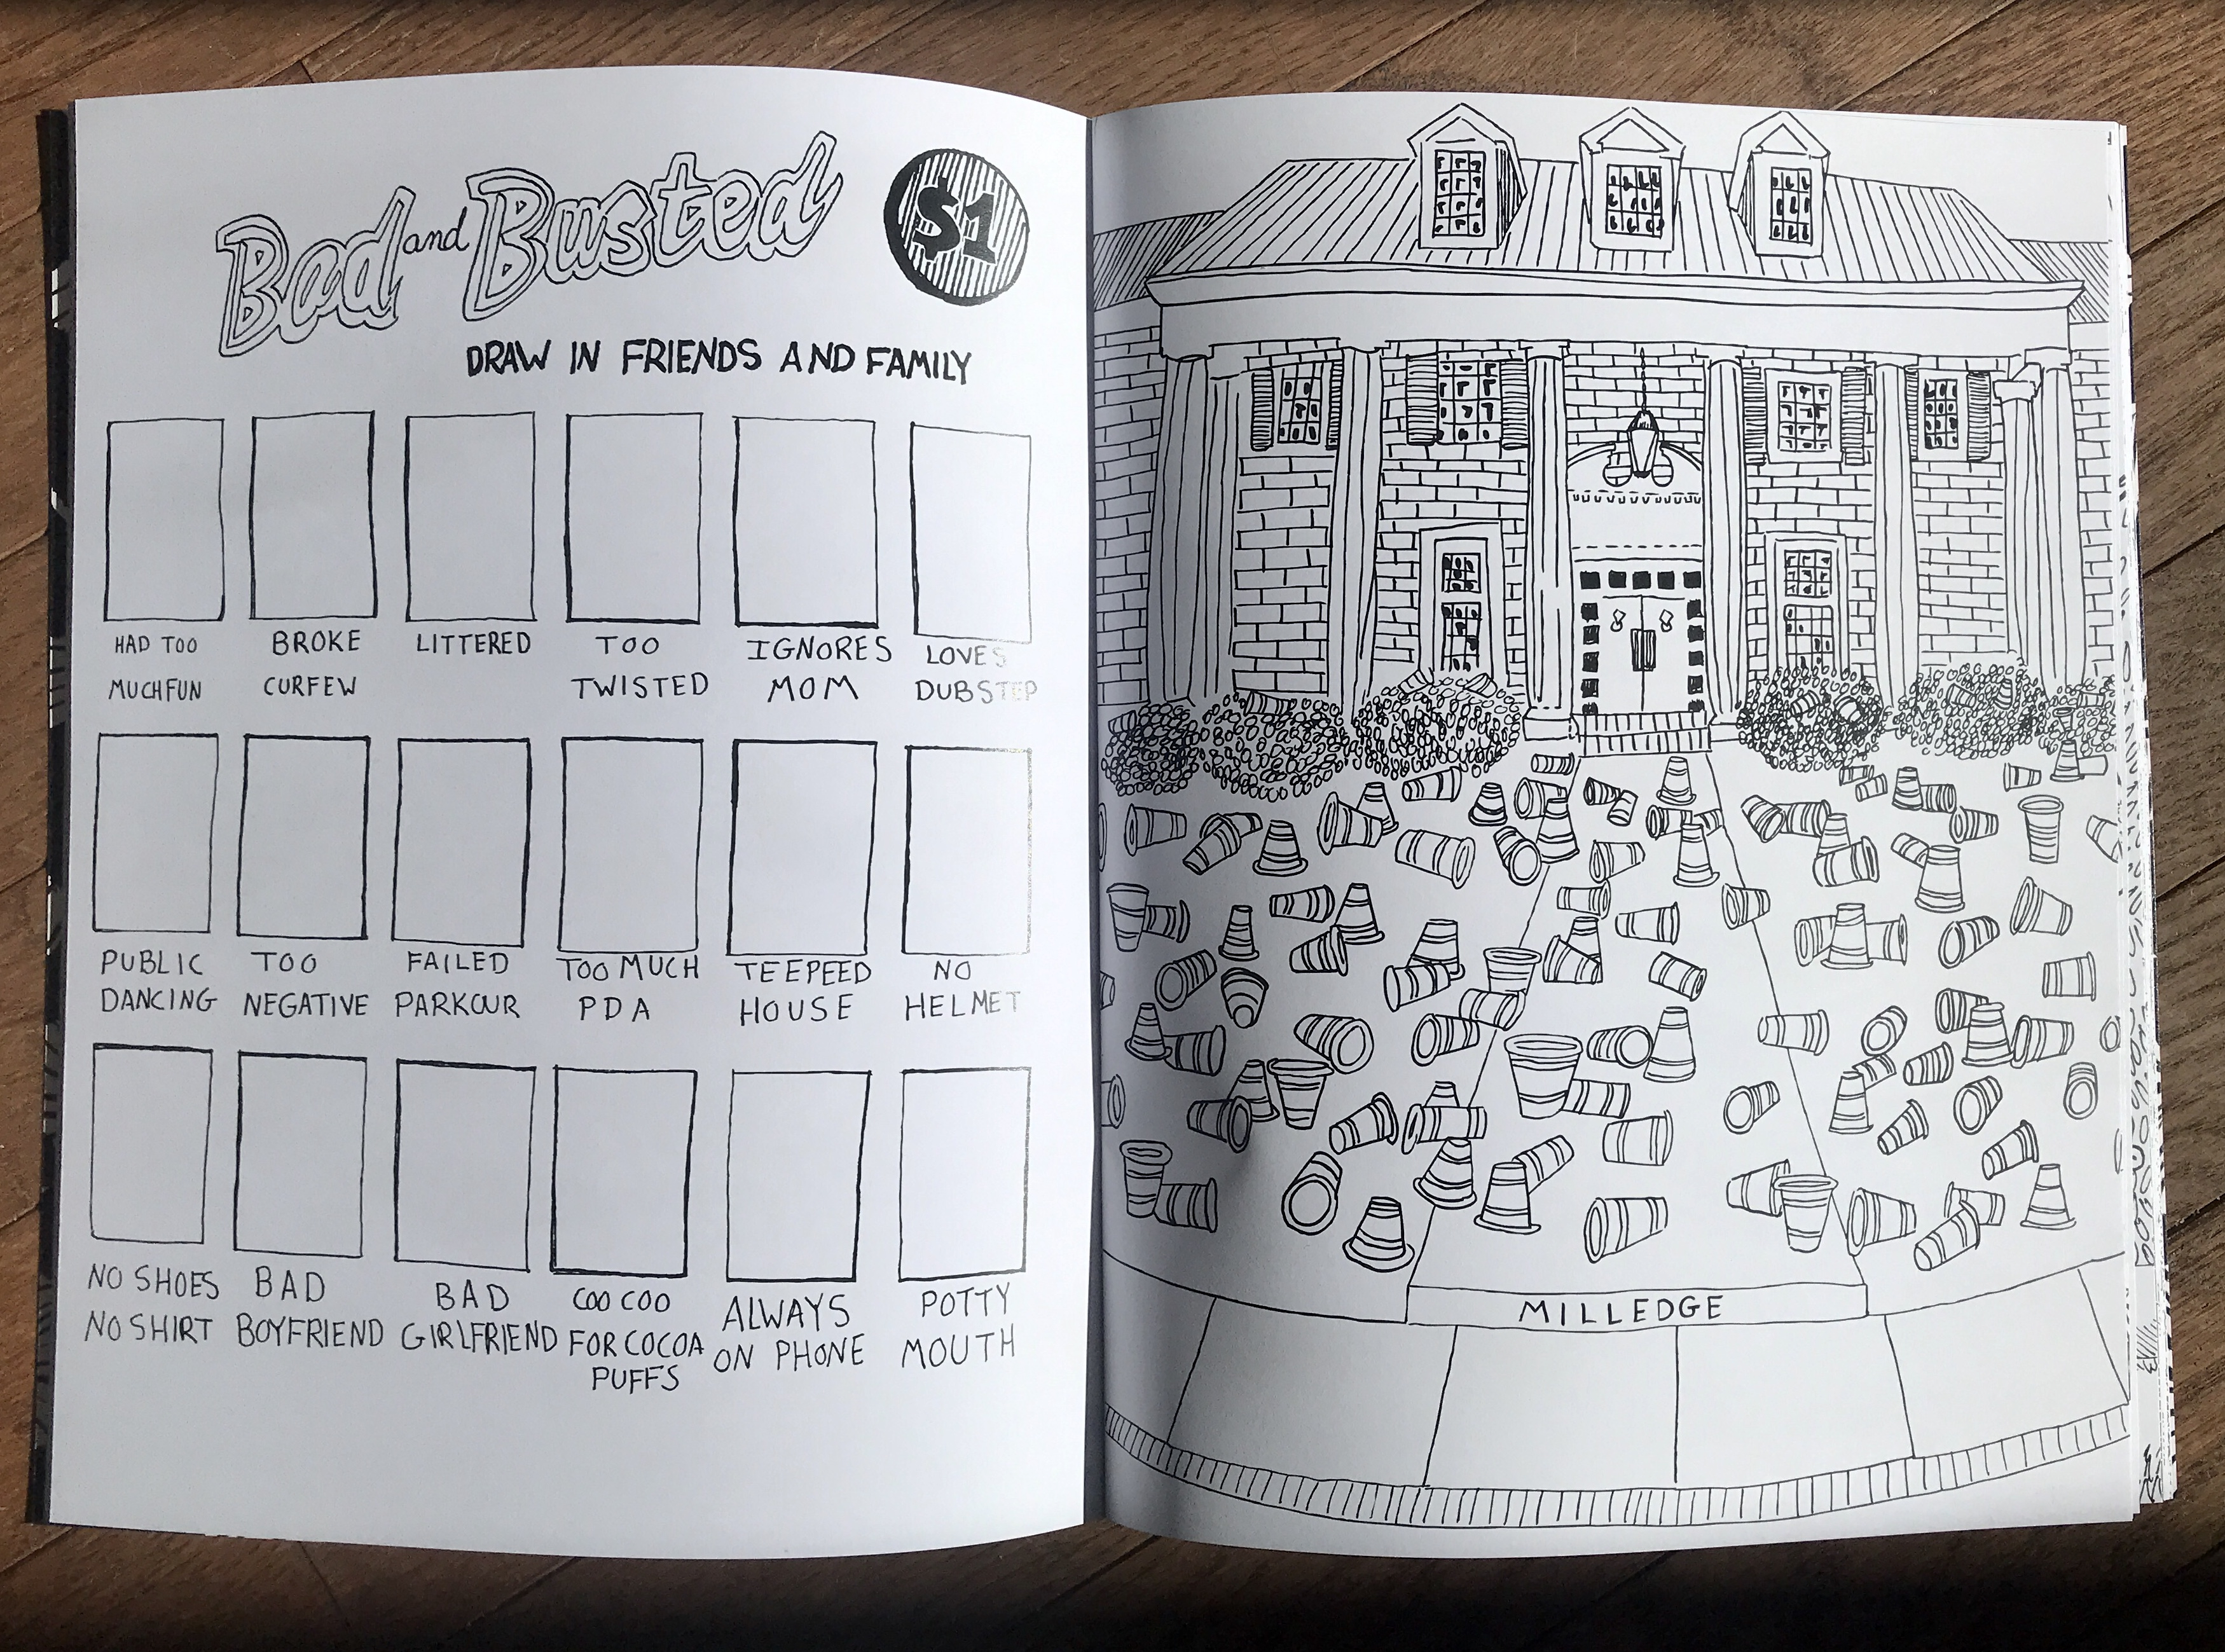 a coloring book interior with an activity page and a fraternity house